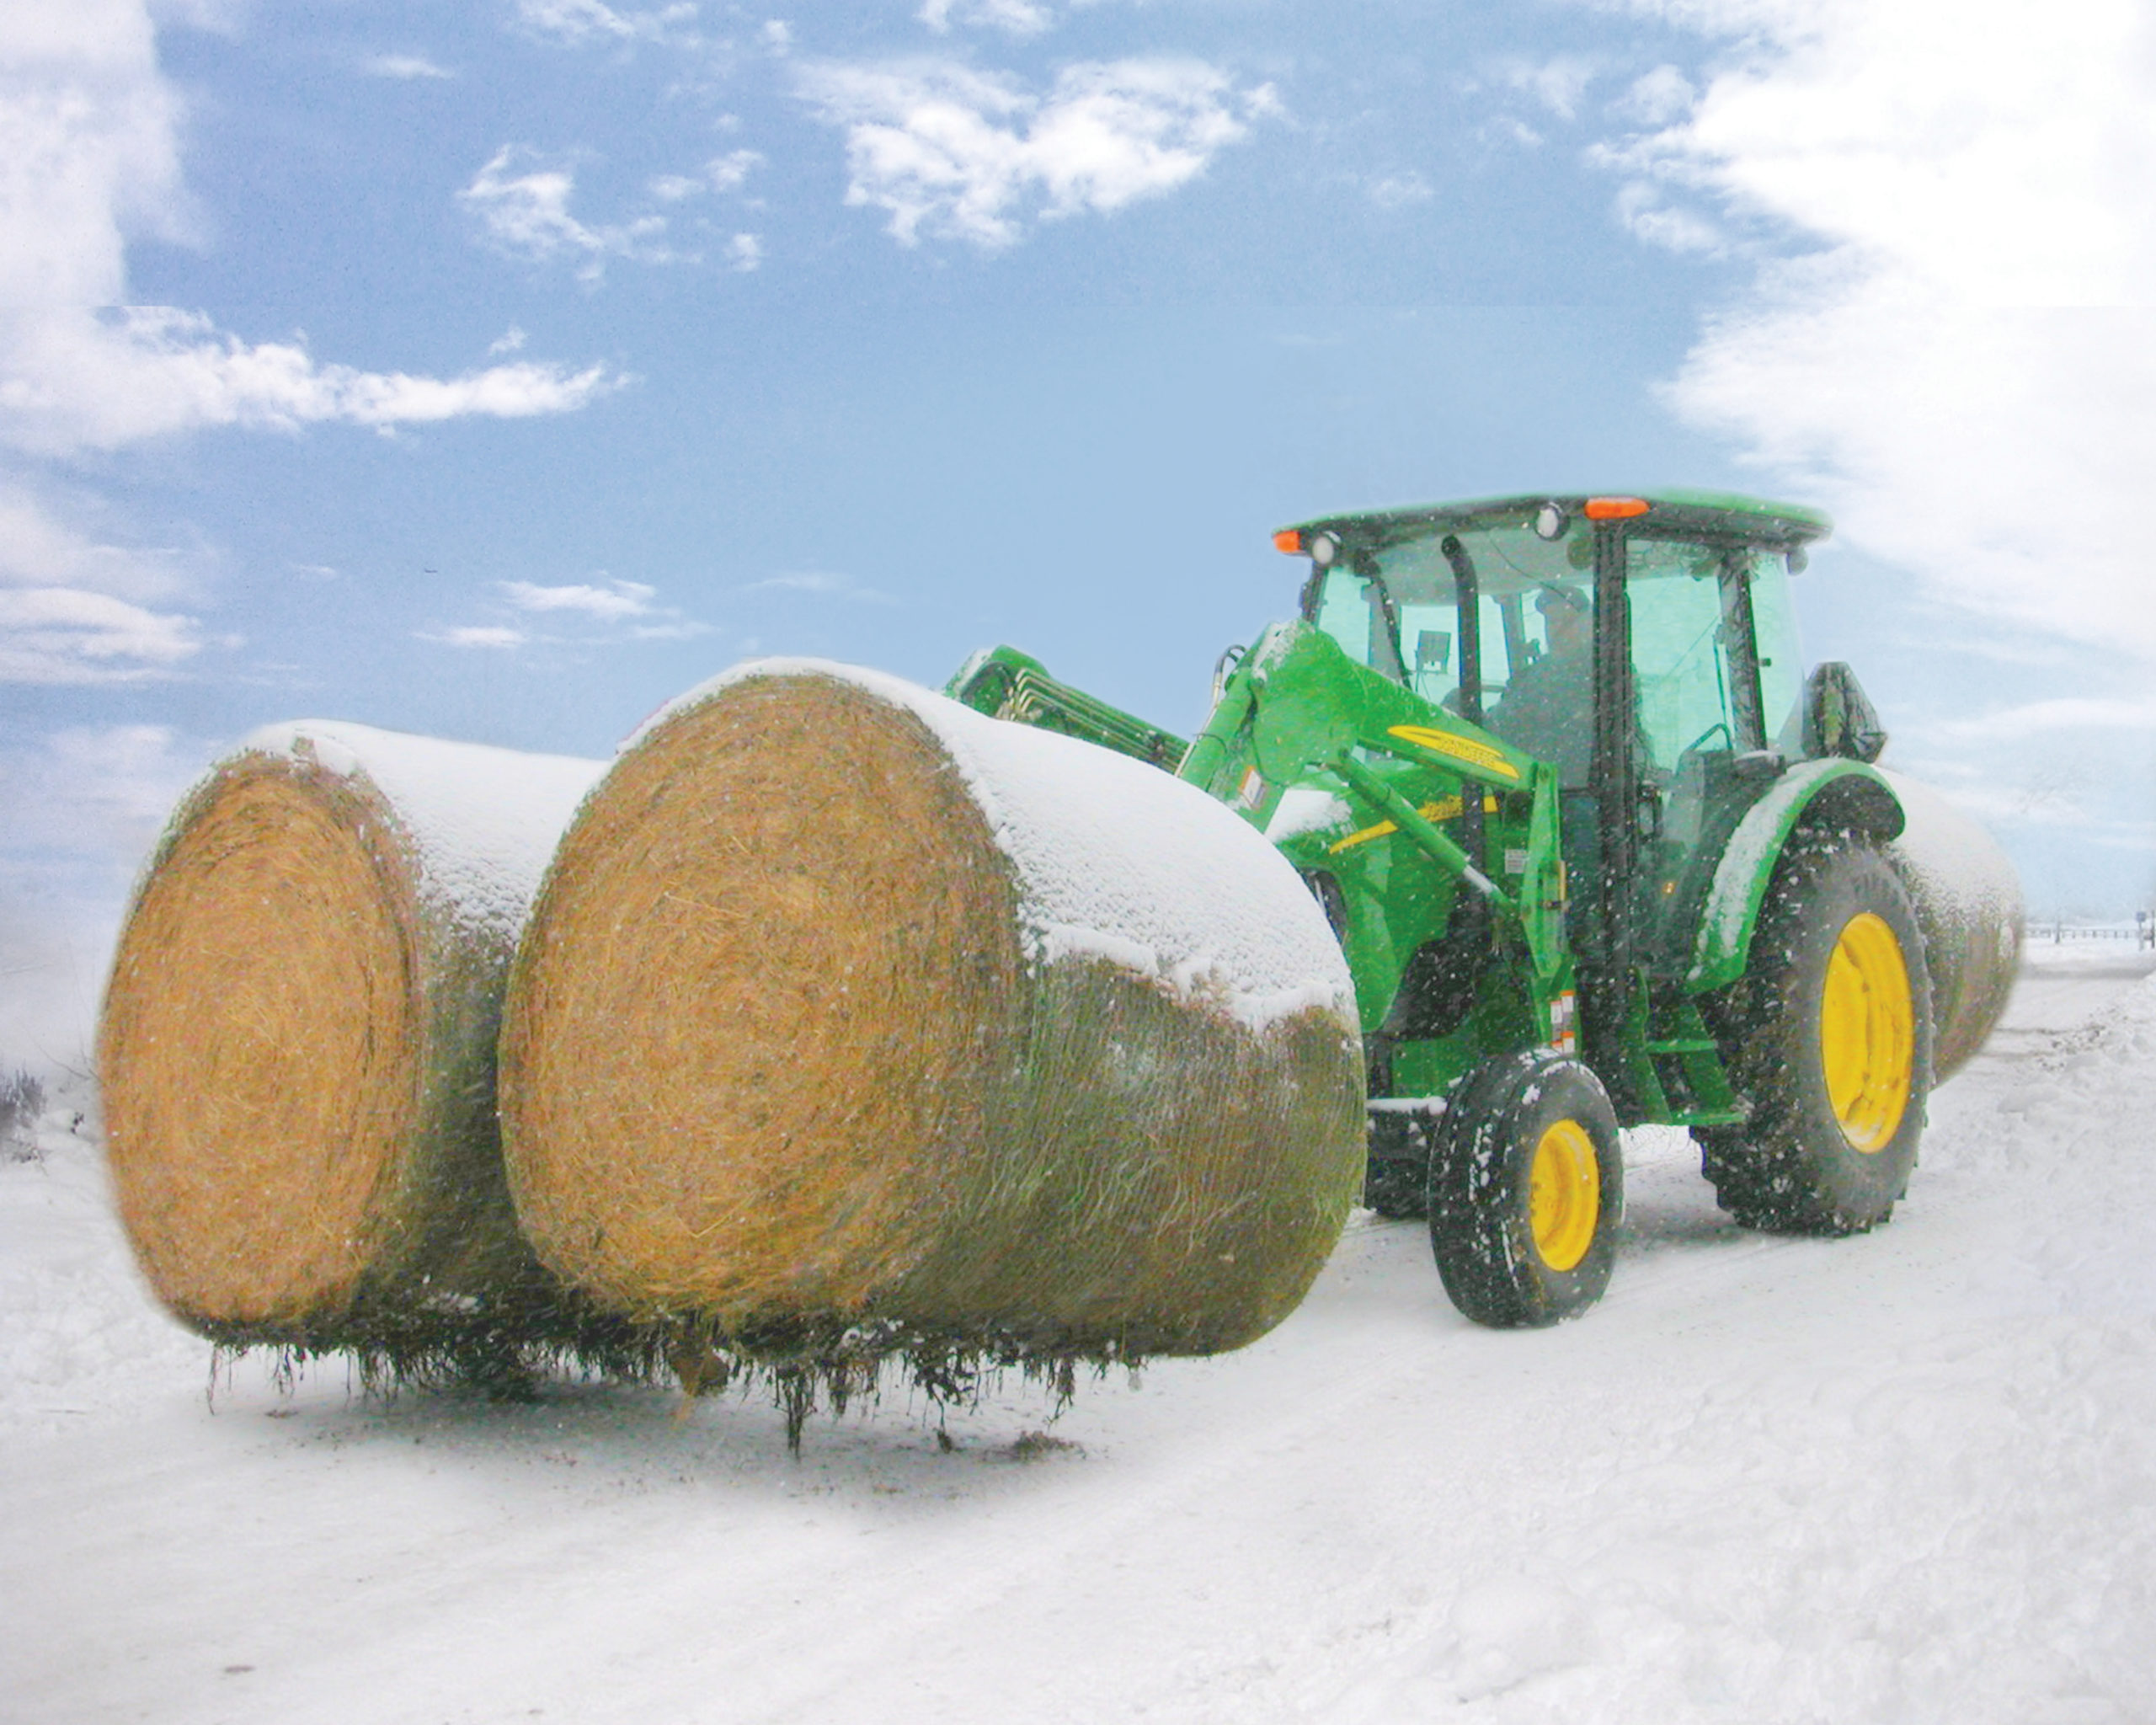 John Deere Two Bale Mover lifting two bales